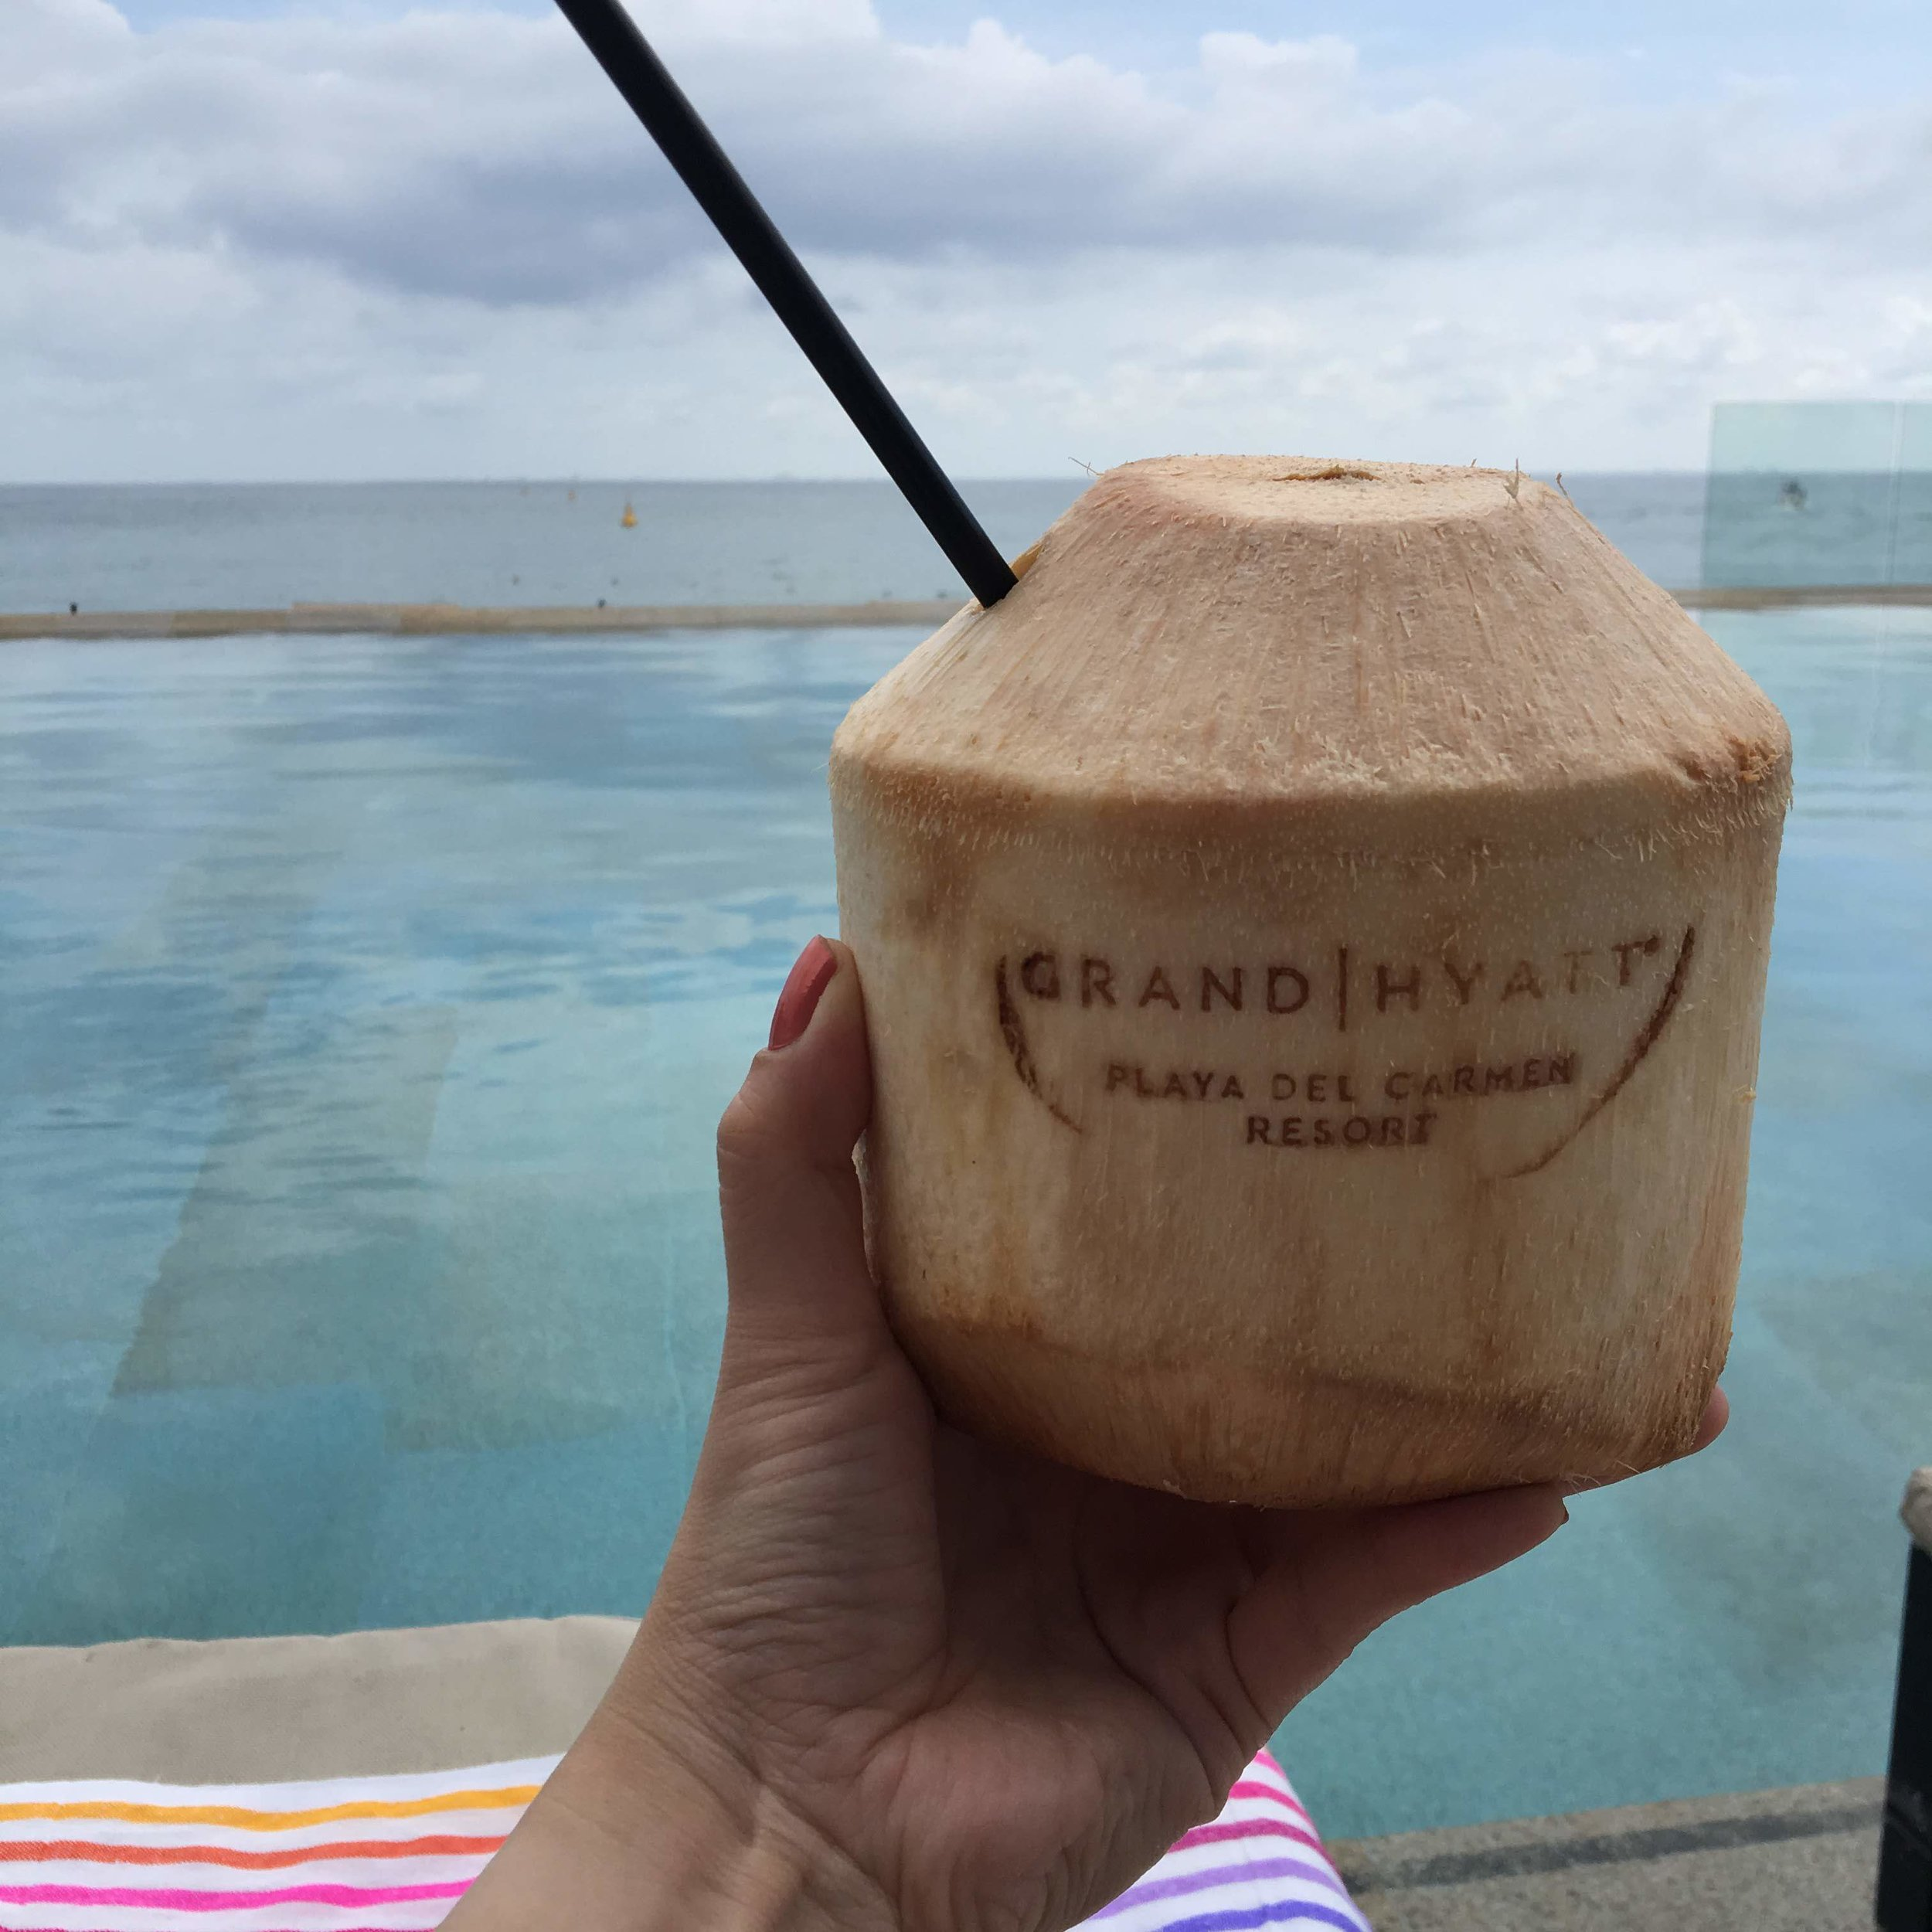 That coconut life!